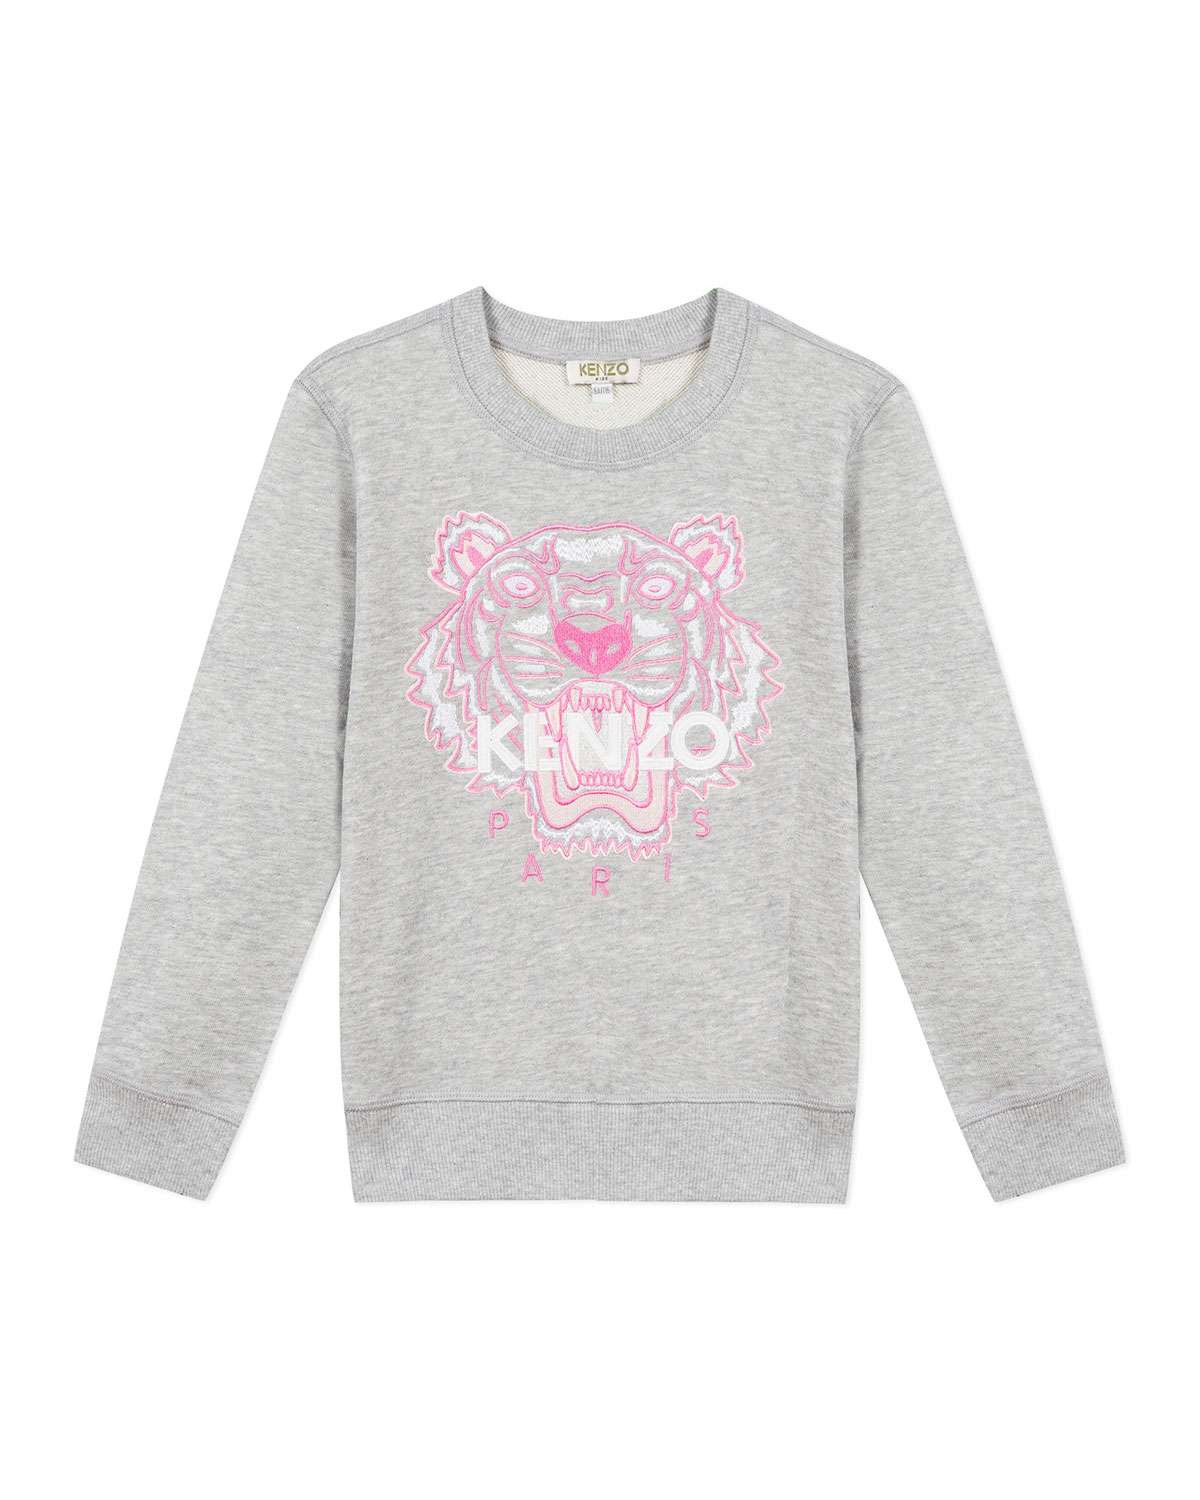 Kenzo Tops GIRL'S EMBROIDERED TIGER LOGO SWEATSHIRT